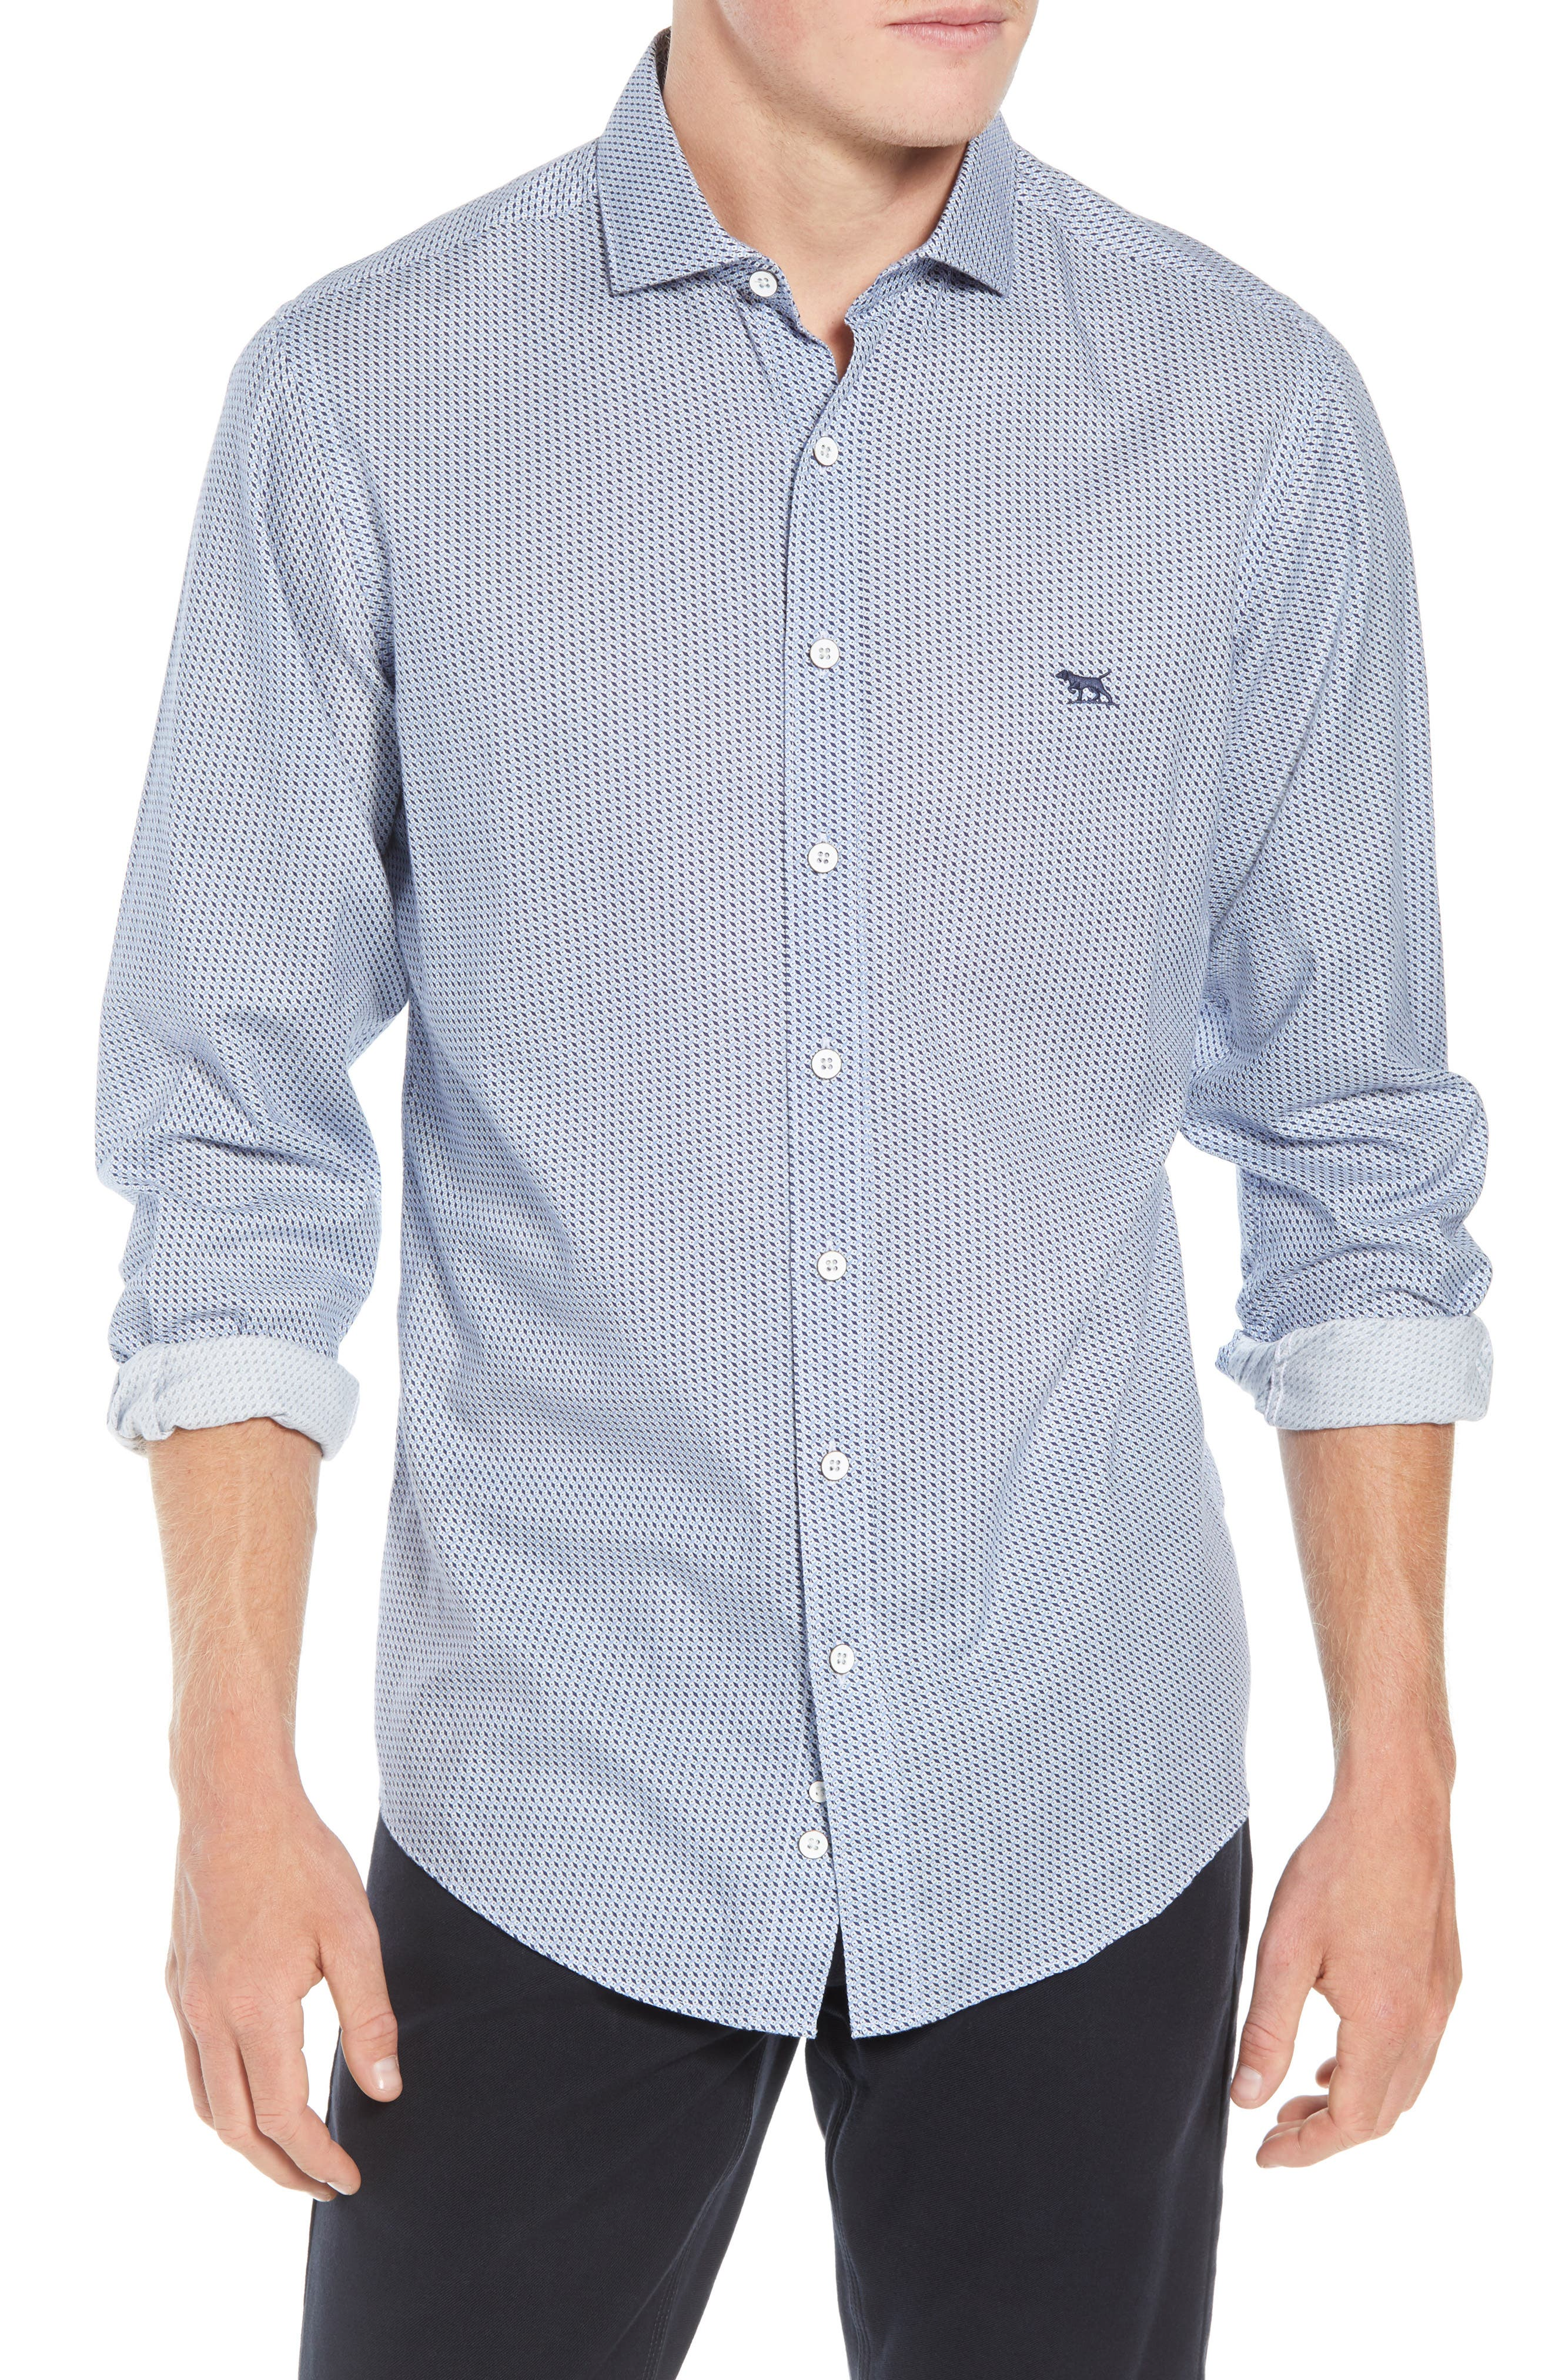 RODD AND GUNN Castor Bay Regular Fit Flannel Sport Shirt at Nordstrom Rack